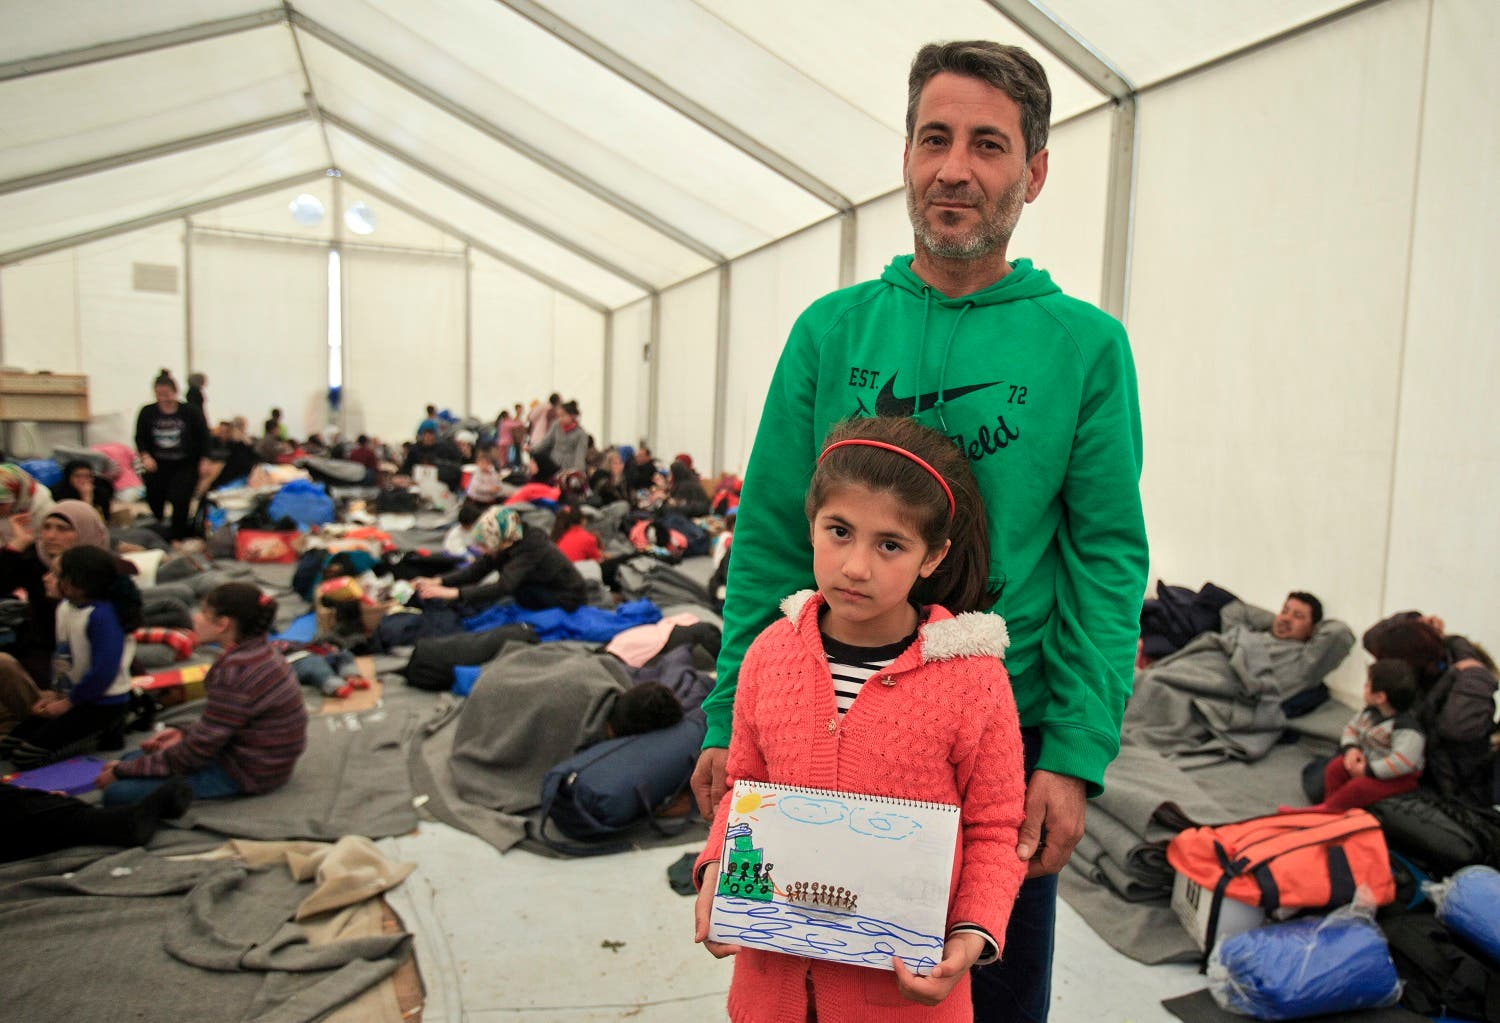 Shaharzad Hassan, 8 year-old from the Syrian city of Aleppo poses with her father Mohamed Hussein Hassan, holding a drawing she made, depicting migrants sailing in a dinghy, at the northern Greek border station of Idomeni, Friday, March 11, 2016. At an overcrowded refugee camp on the Greek-Macedonian border, 8-year-old Shaharzad Hassan draws pictures of the harrowing events in her life over the past 18 months: Pictures of death in her home town of Aleppo, Syria, and her perilous journey to Europe. The title of this drawing is